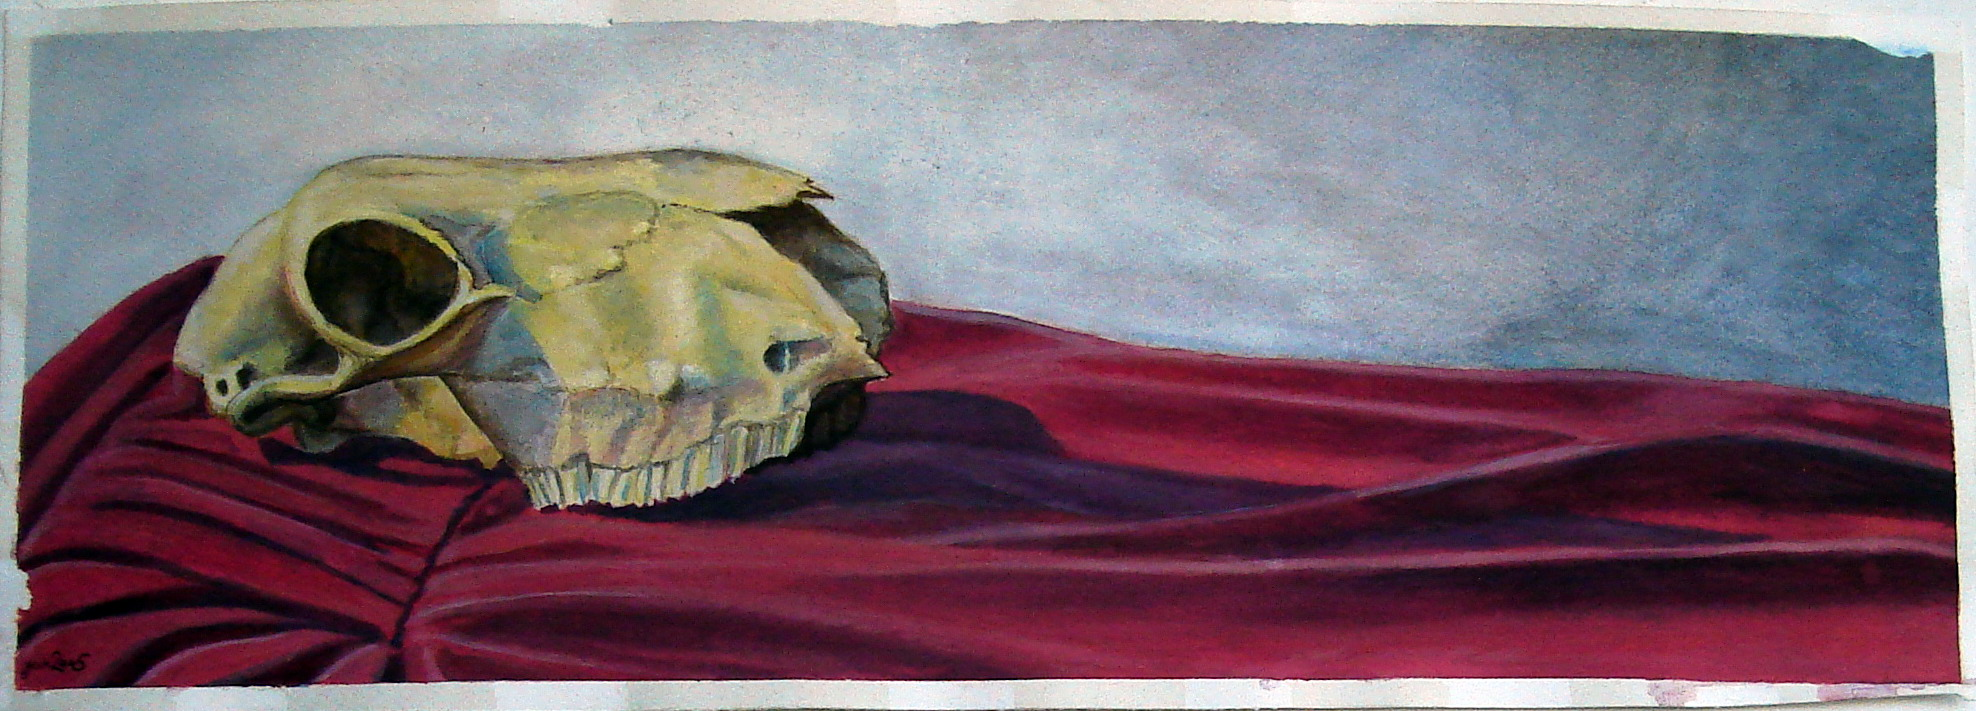 Skull on Red Drapery